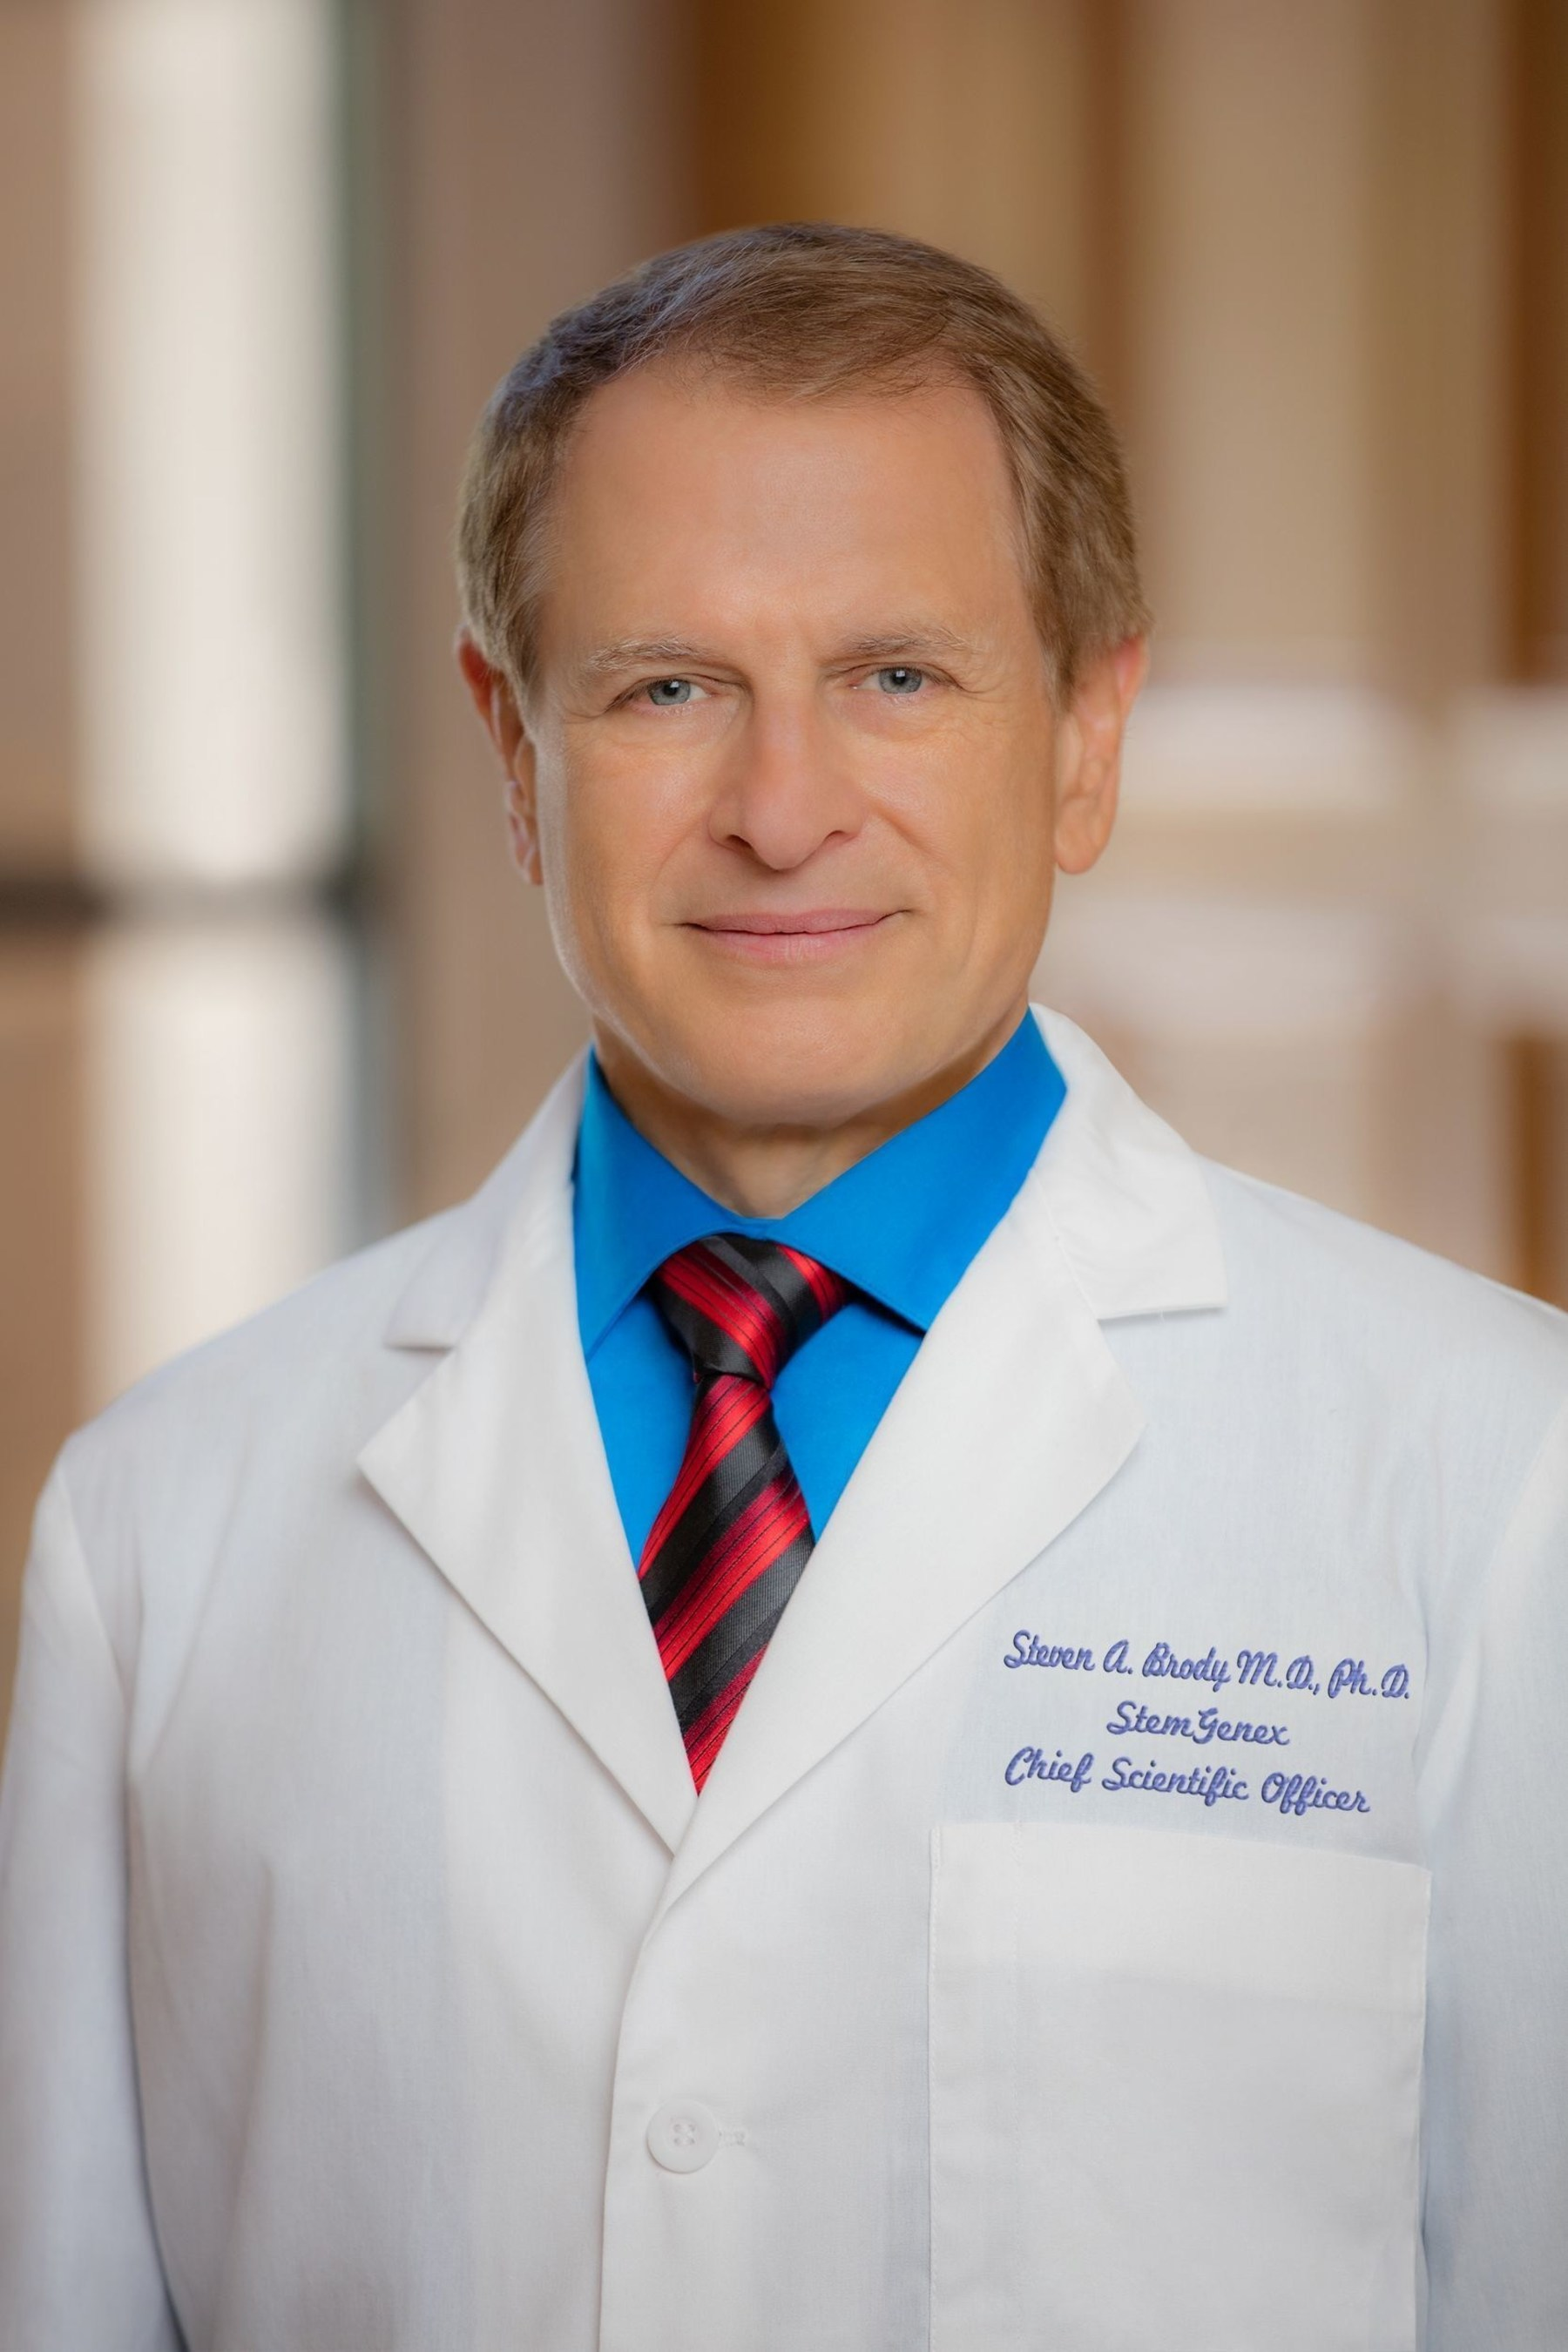 Steven A. Brody, M.D., Ph.D. Chief Scientific Officer